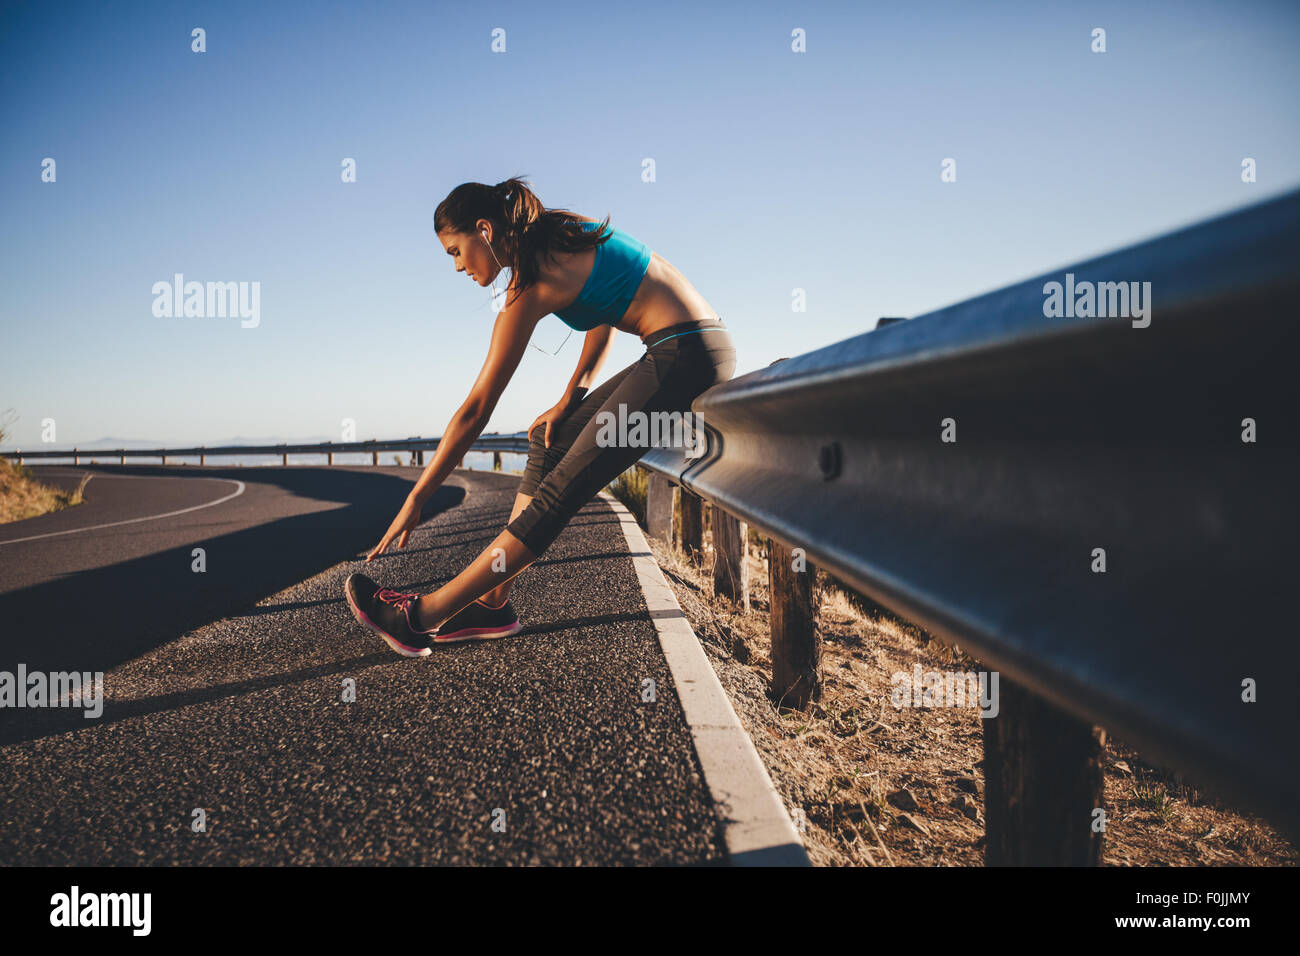 Young woman doing some stretching after a run. Runner leaning on road guardrail relaxing her calf muscles. Stock Photo